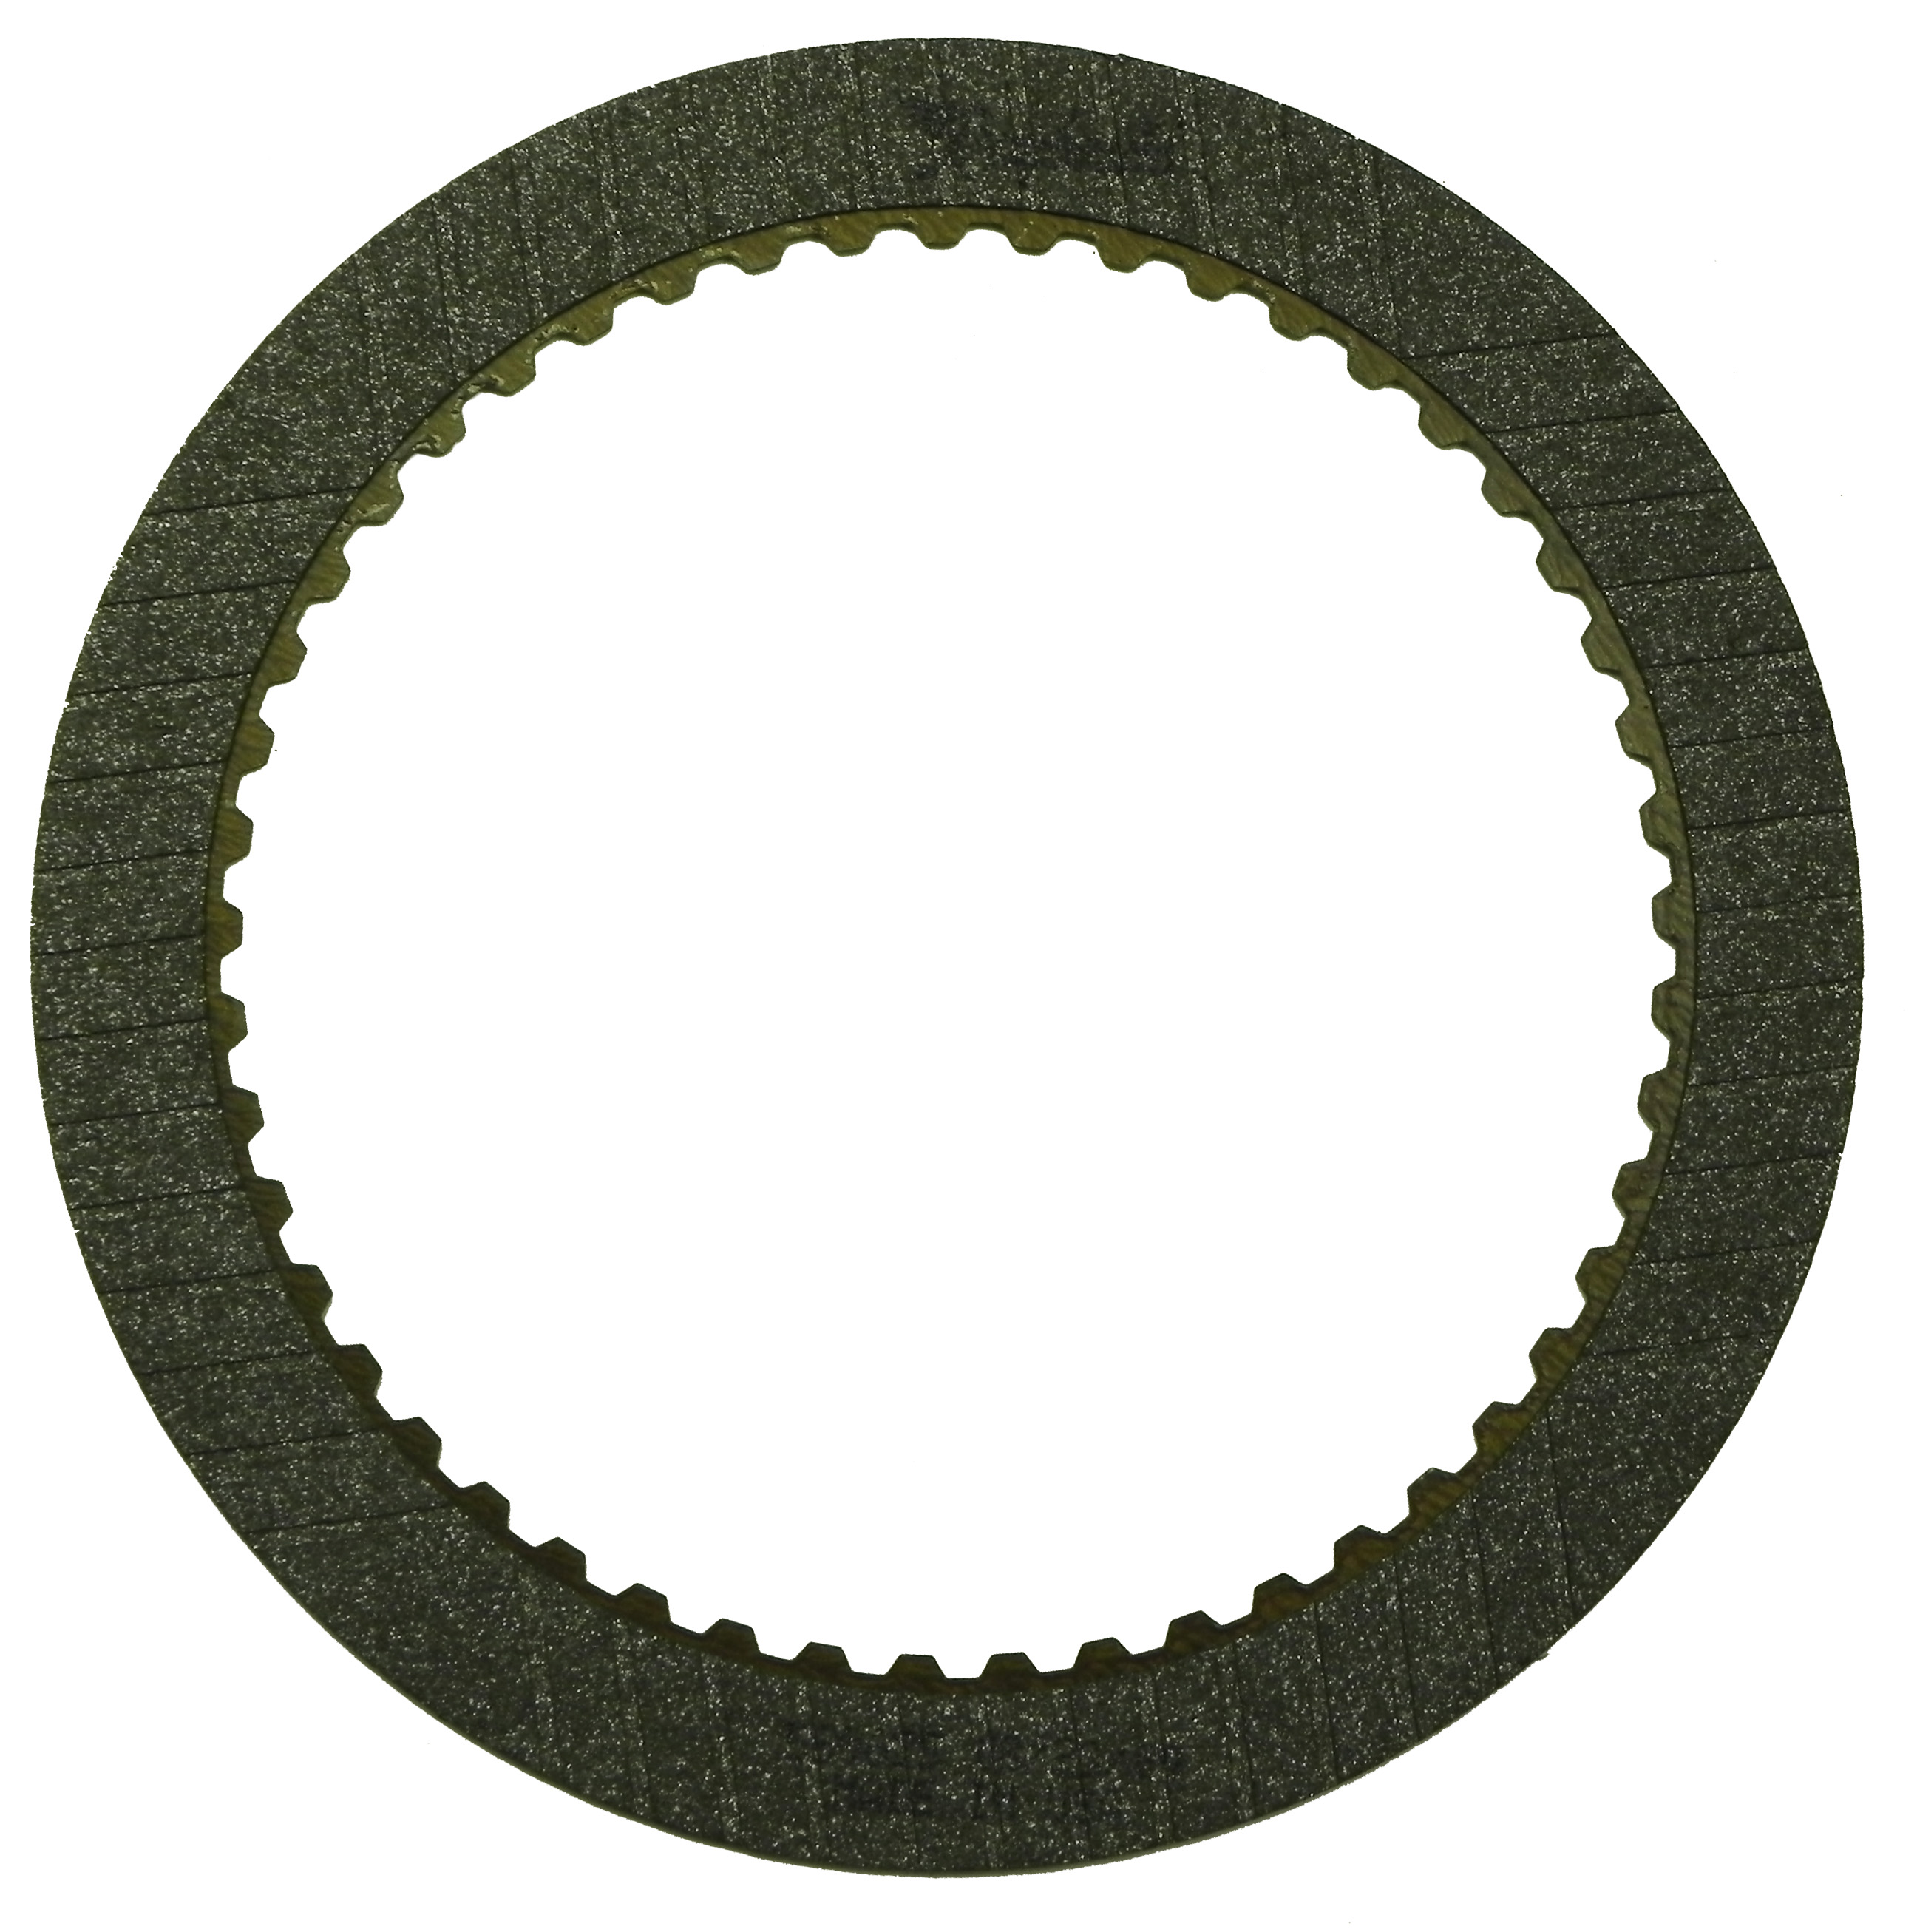 R559625 | 1983-ON Friction Clutch Plate Graphitic Direct Graphitic